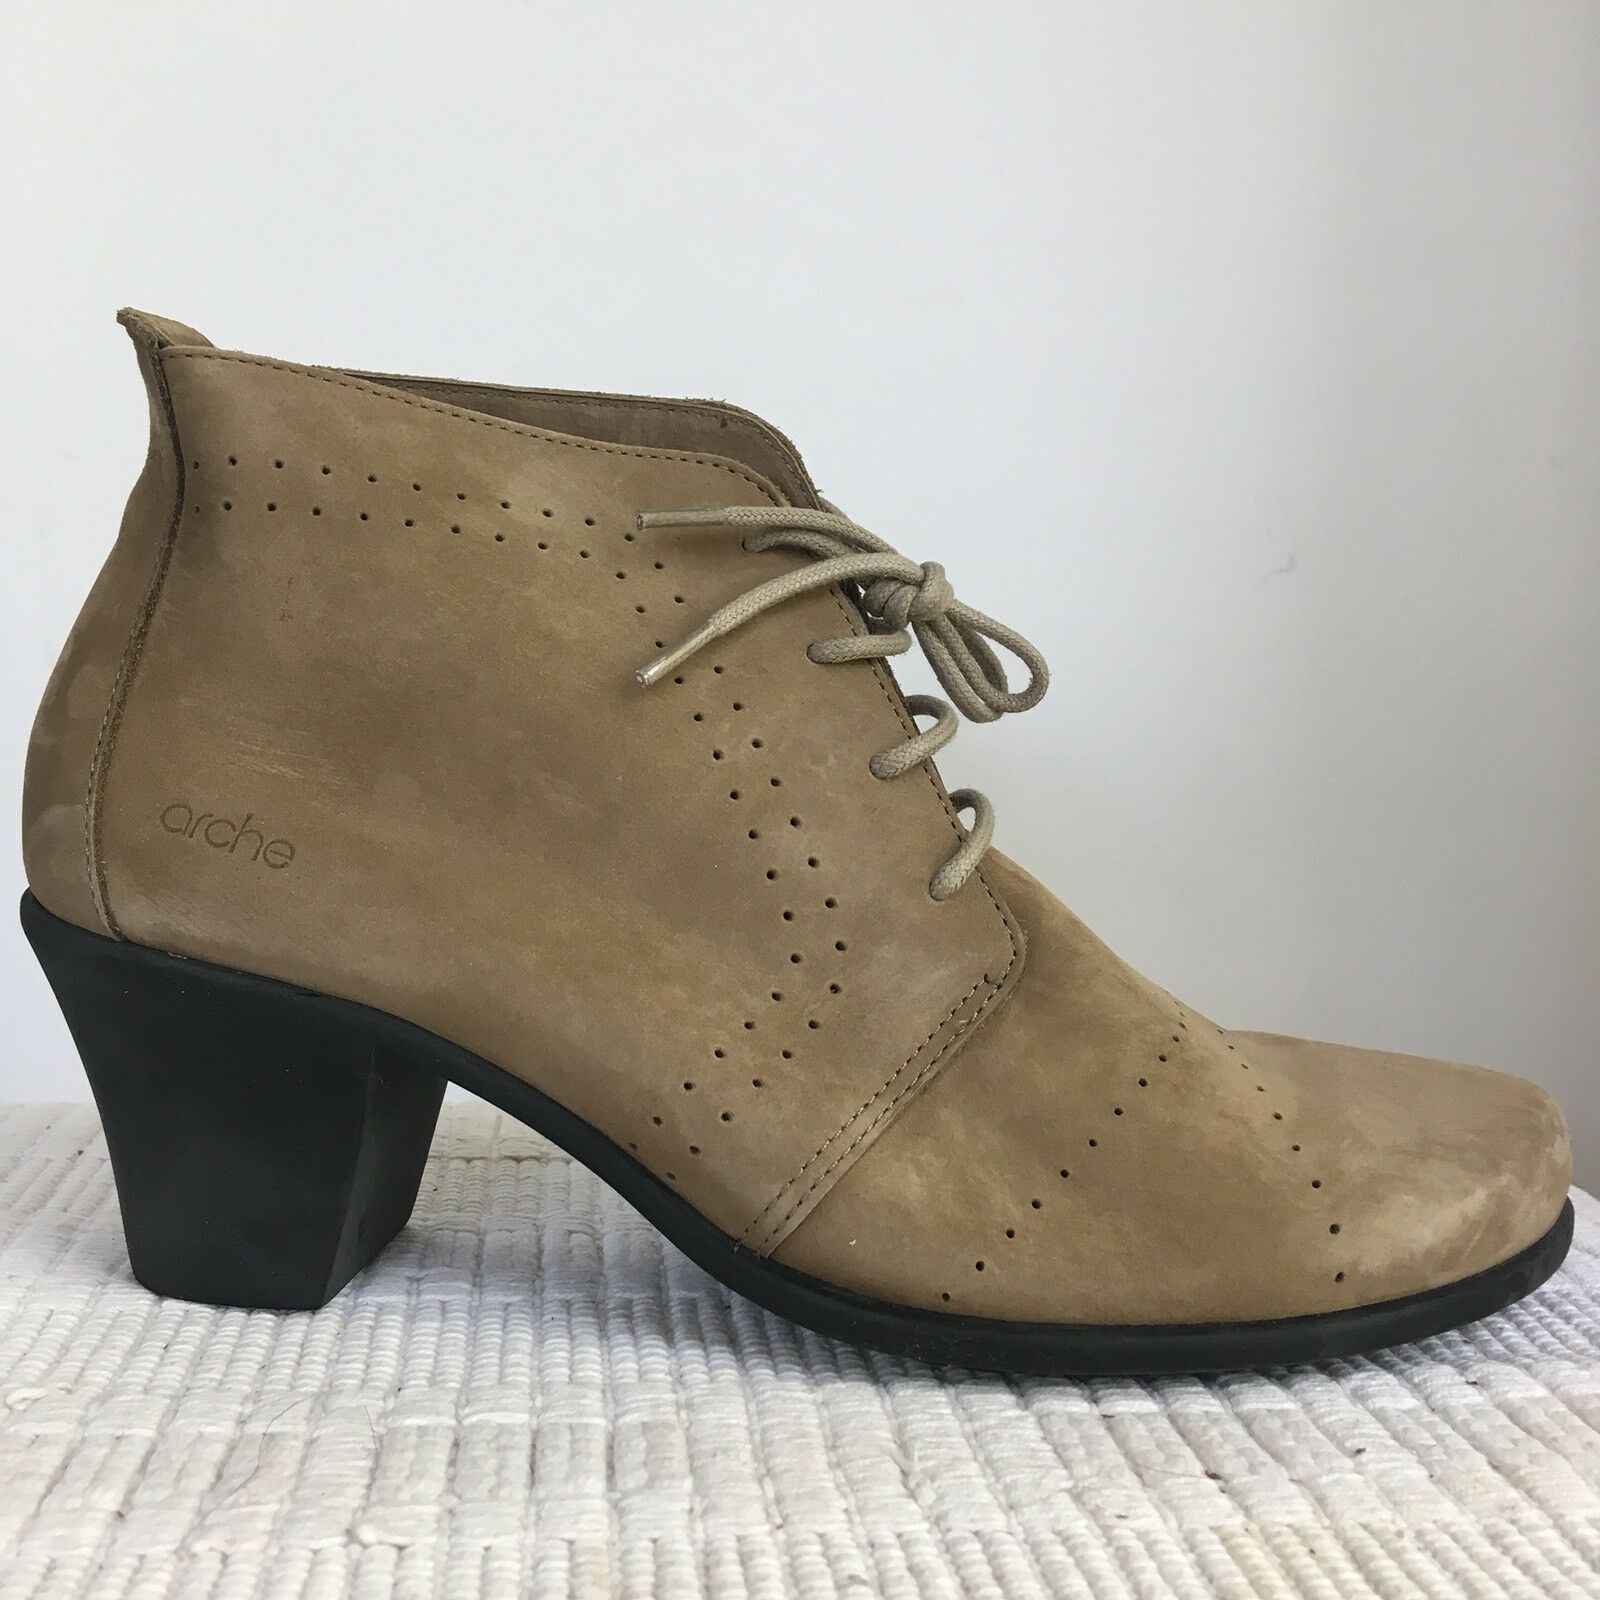 Arche EUR 40 US 9 Maorem Heeled Booties Nubuck Sand Brown Lace Up Women's NEW